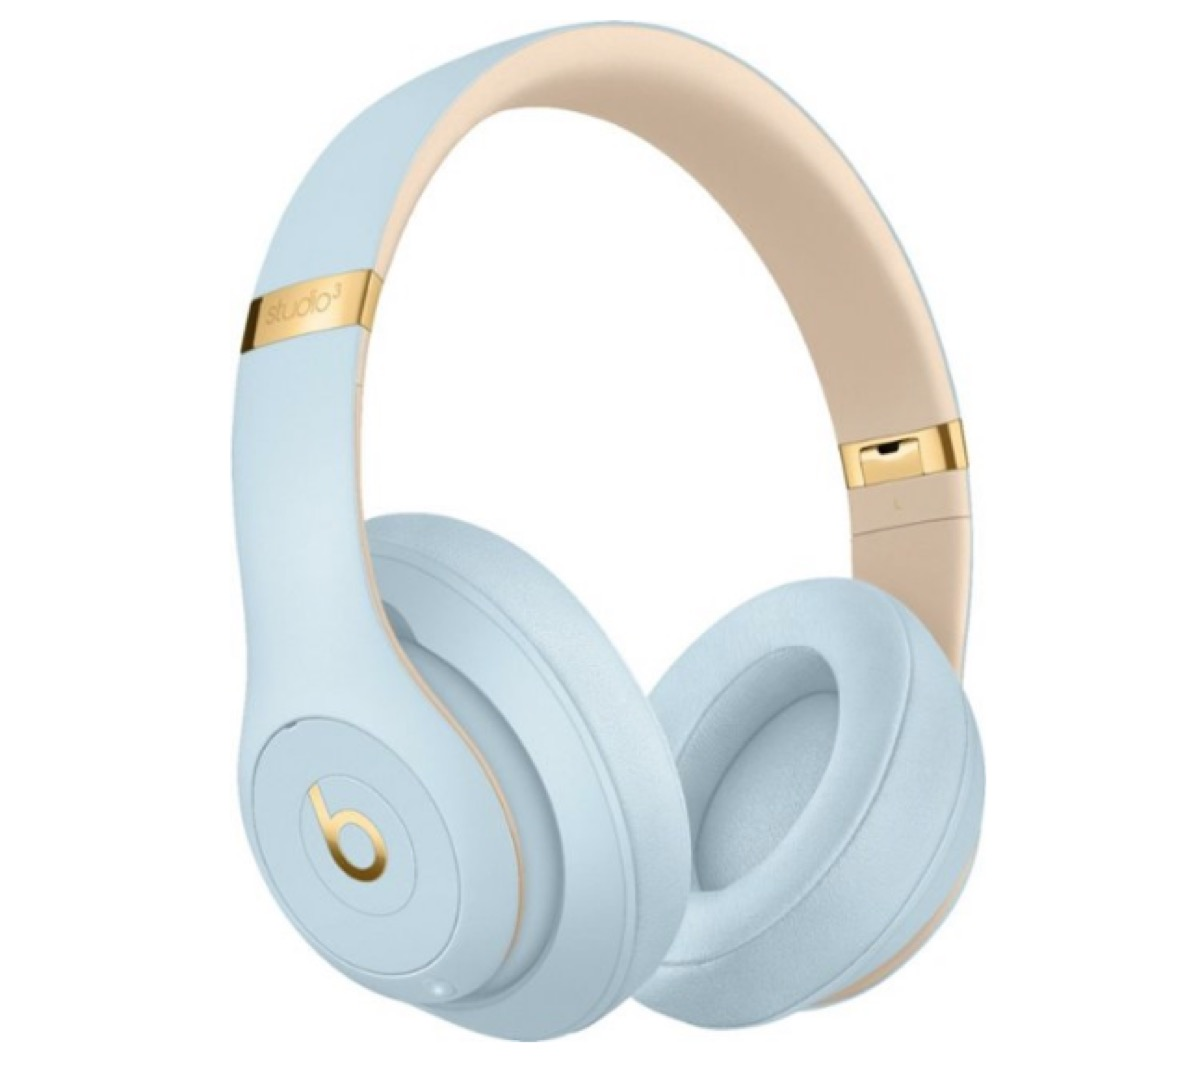 Beats by Dre Blue buy after holidays